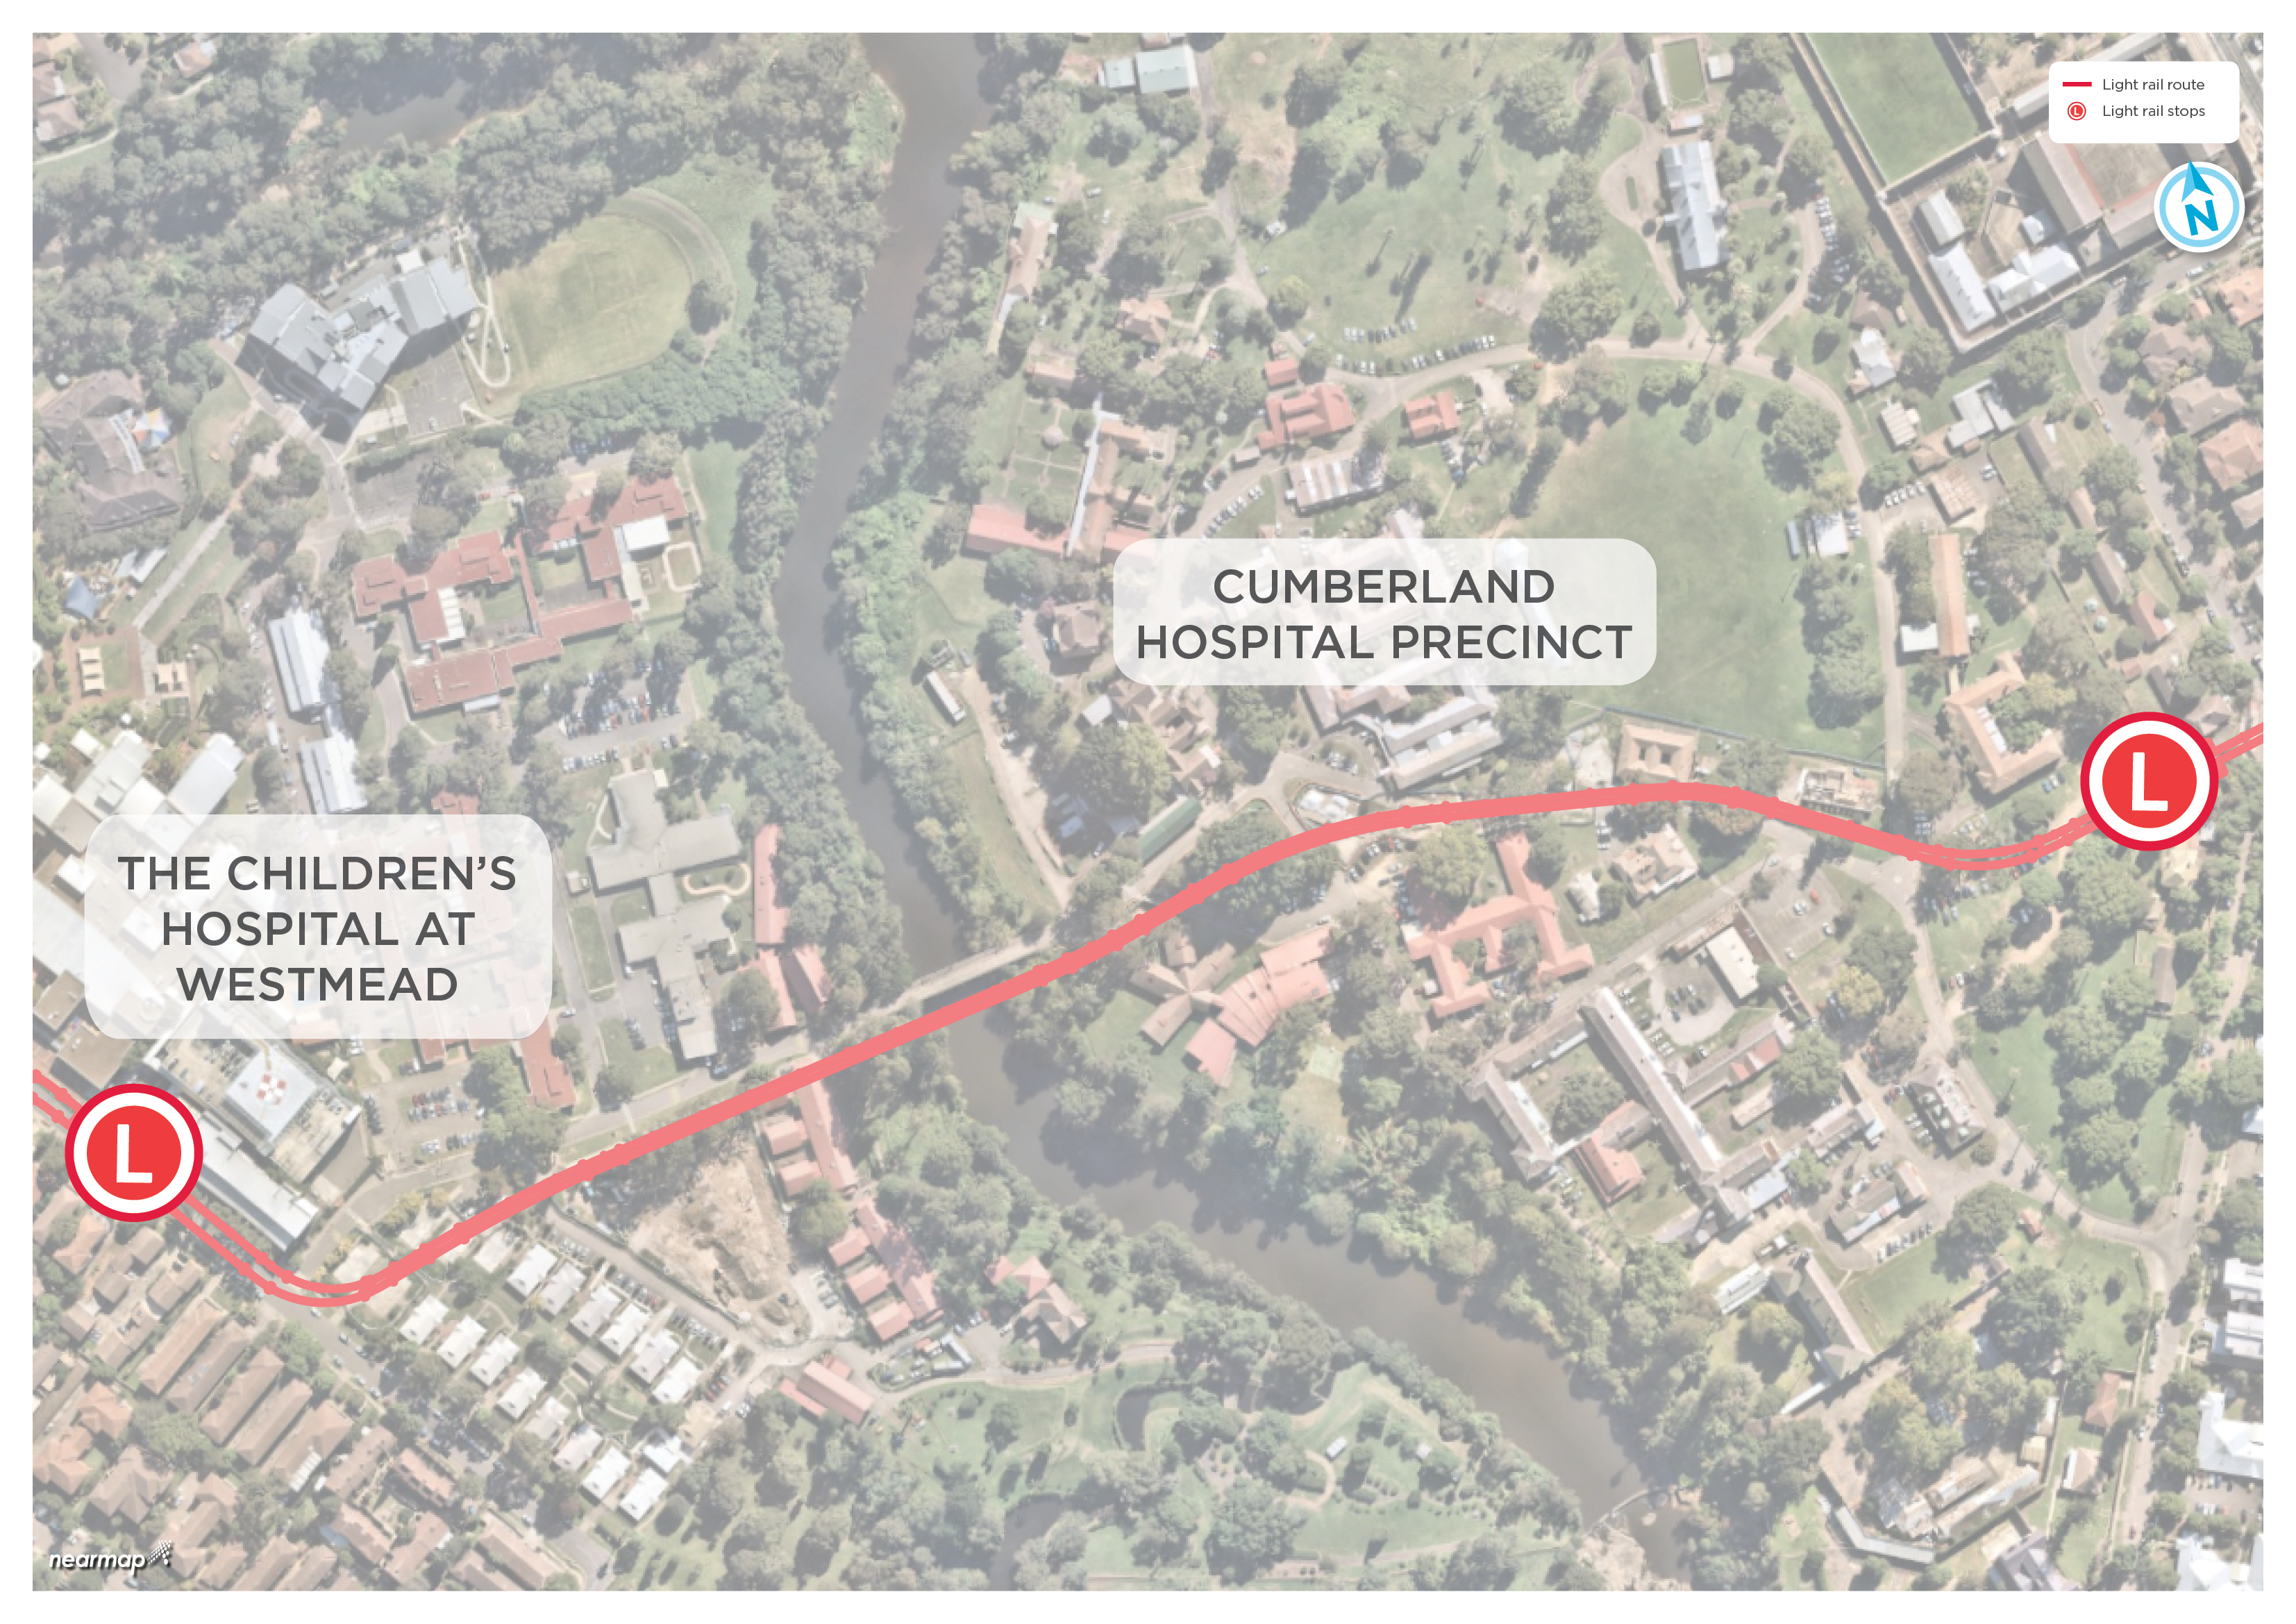 Map showing the future light rail route through the Cumberland Hospital Precinct